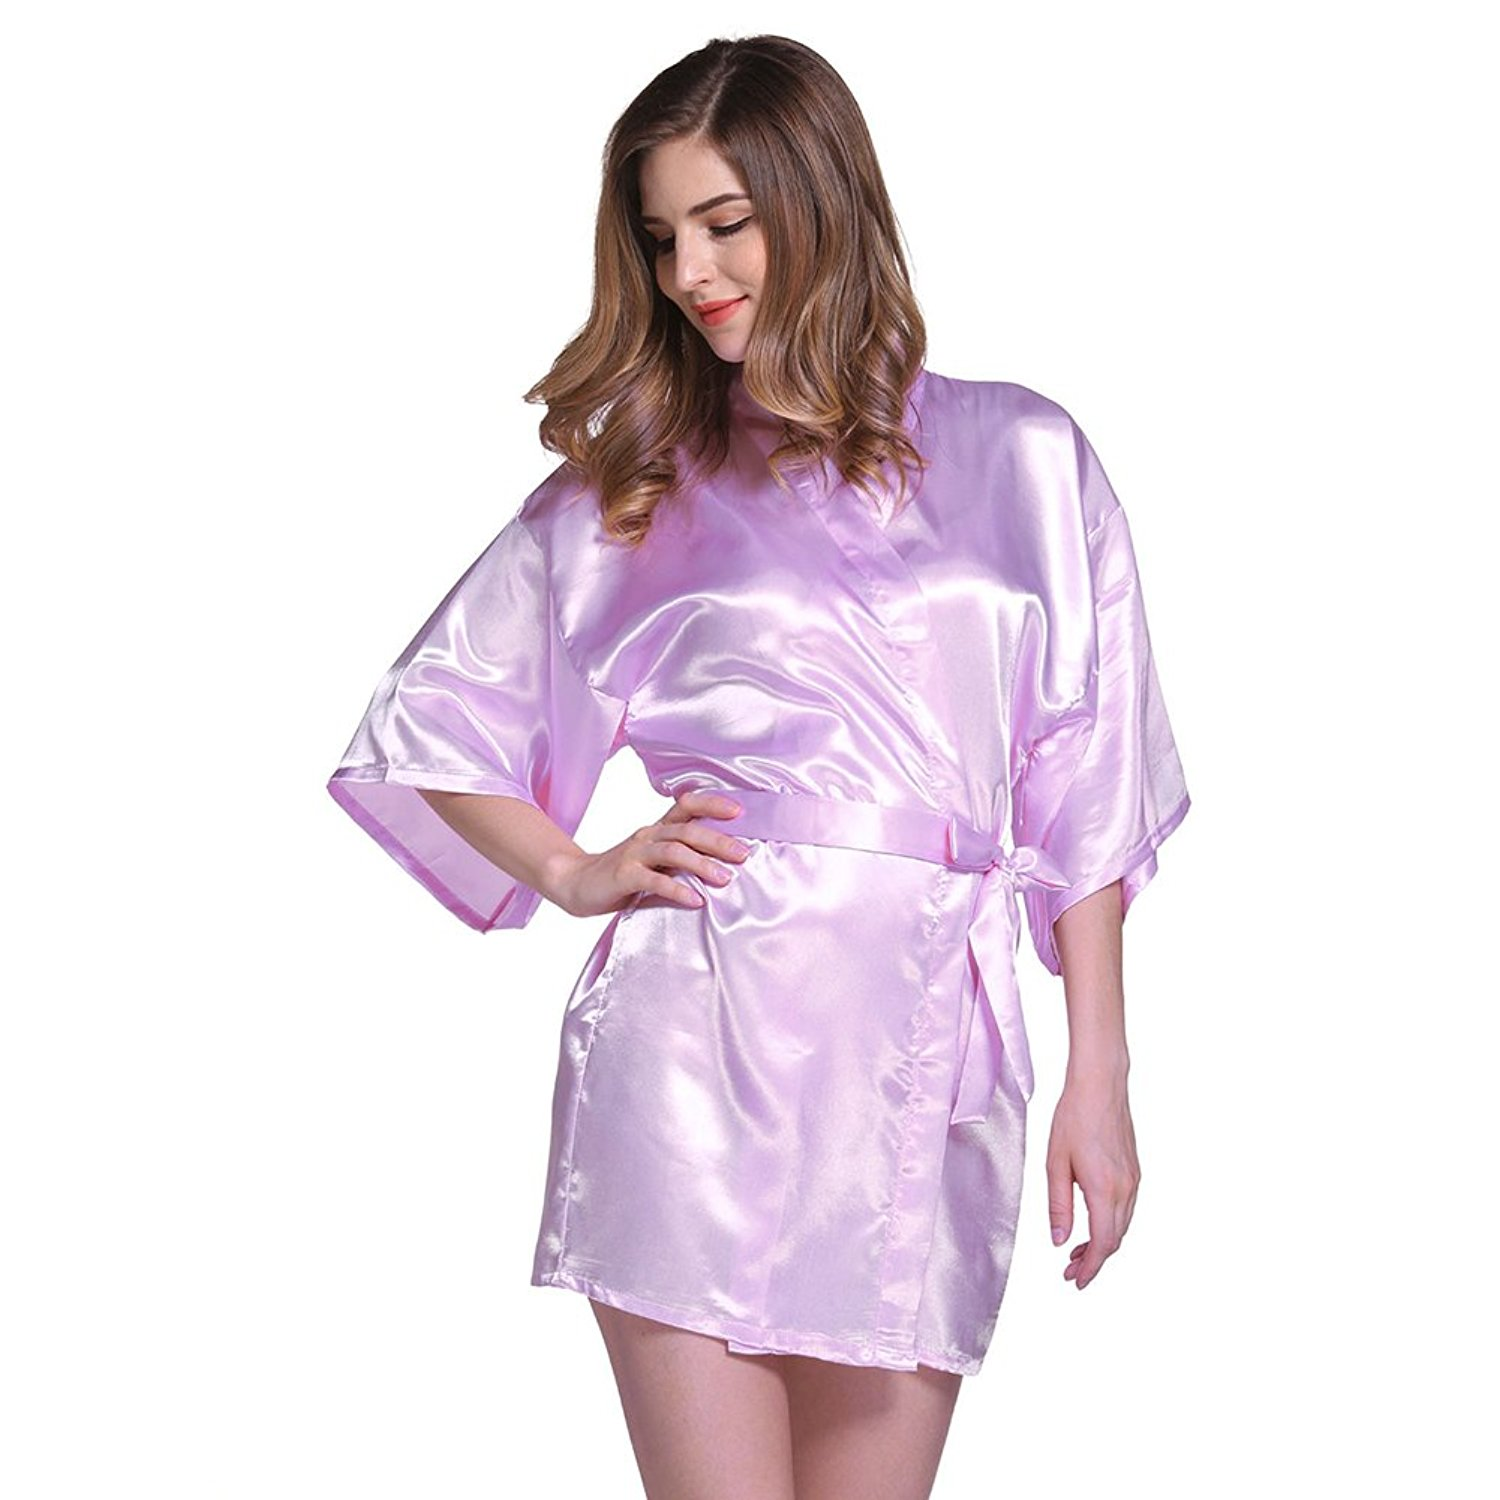 59b175ca9 Get Quotations · Amurleopard Womens Kimono Robe Knee Length Bridal Lingerie  Sleepwear Pure Colour Short Satin Robe Light Purple